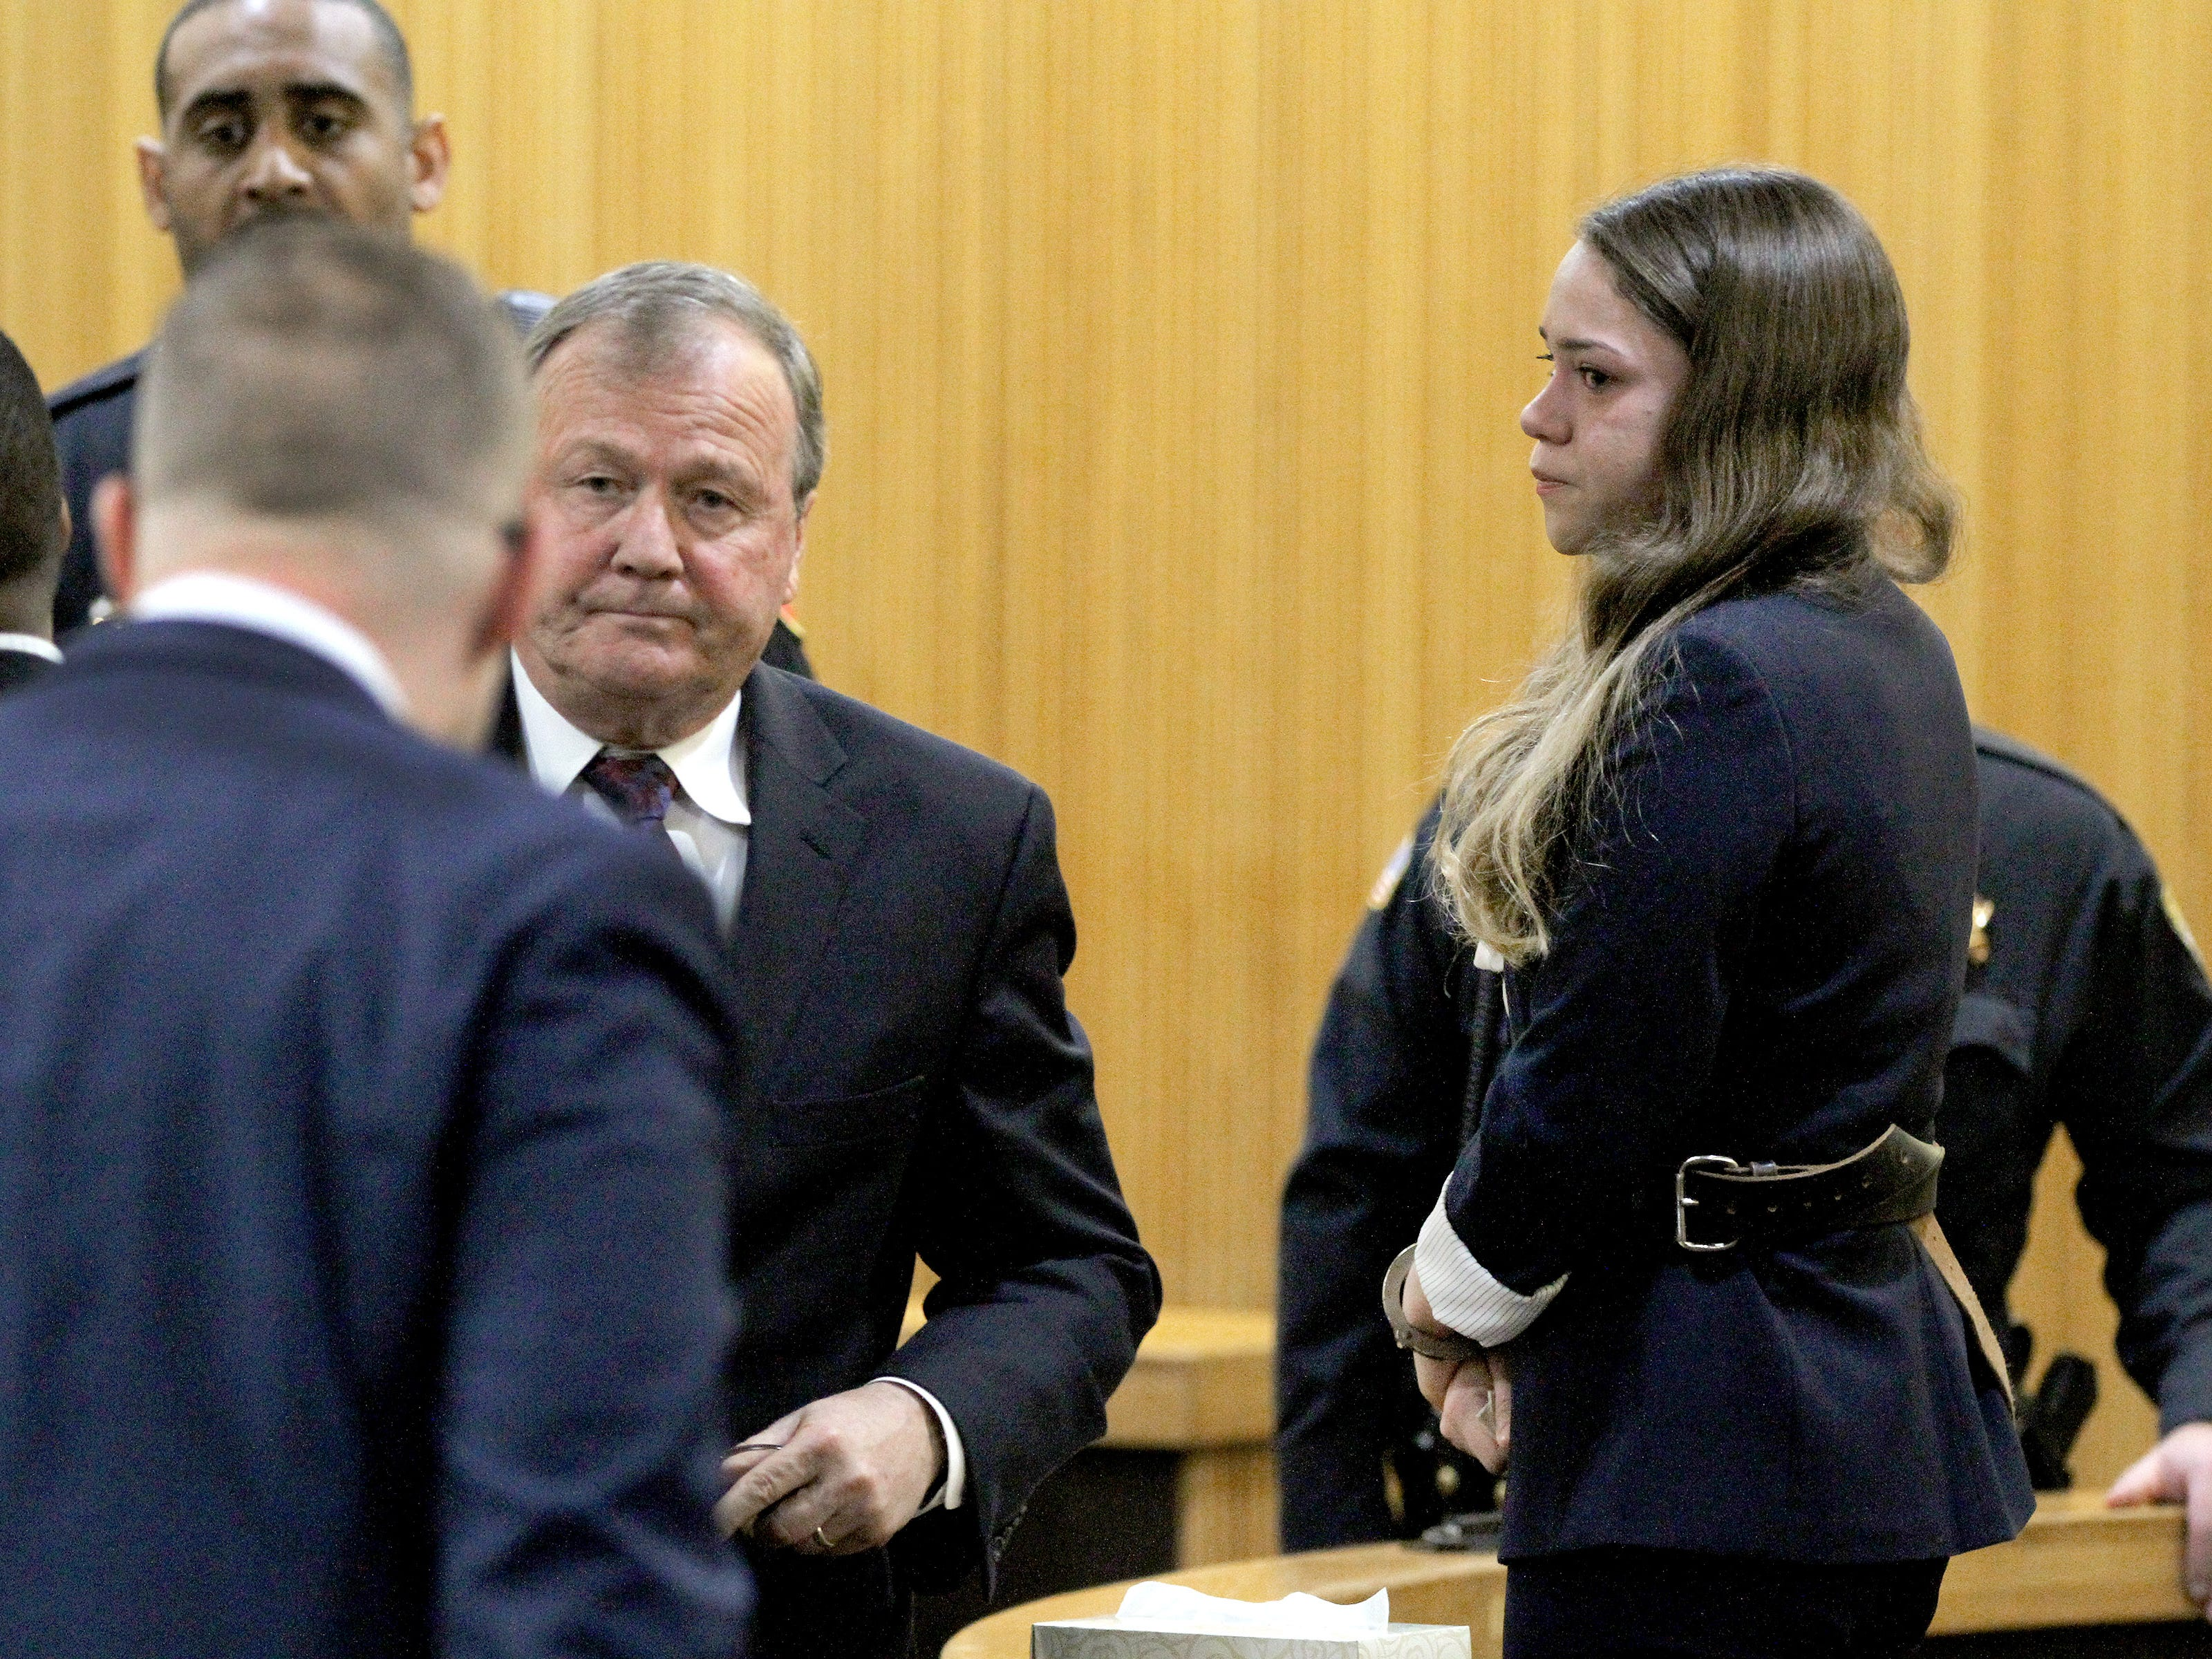 Brookdale Community College honors student Raquel Garajau is shown with her attorney Robert Honecker in State Superior Court courtroom in Freehold Friday, January 18, 2019 after receiving a 33 year prison term for felony murder and other offenses related to the death of marijuana dealer Trupal Patel.